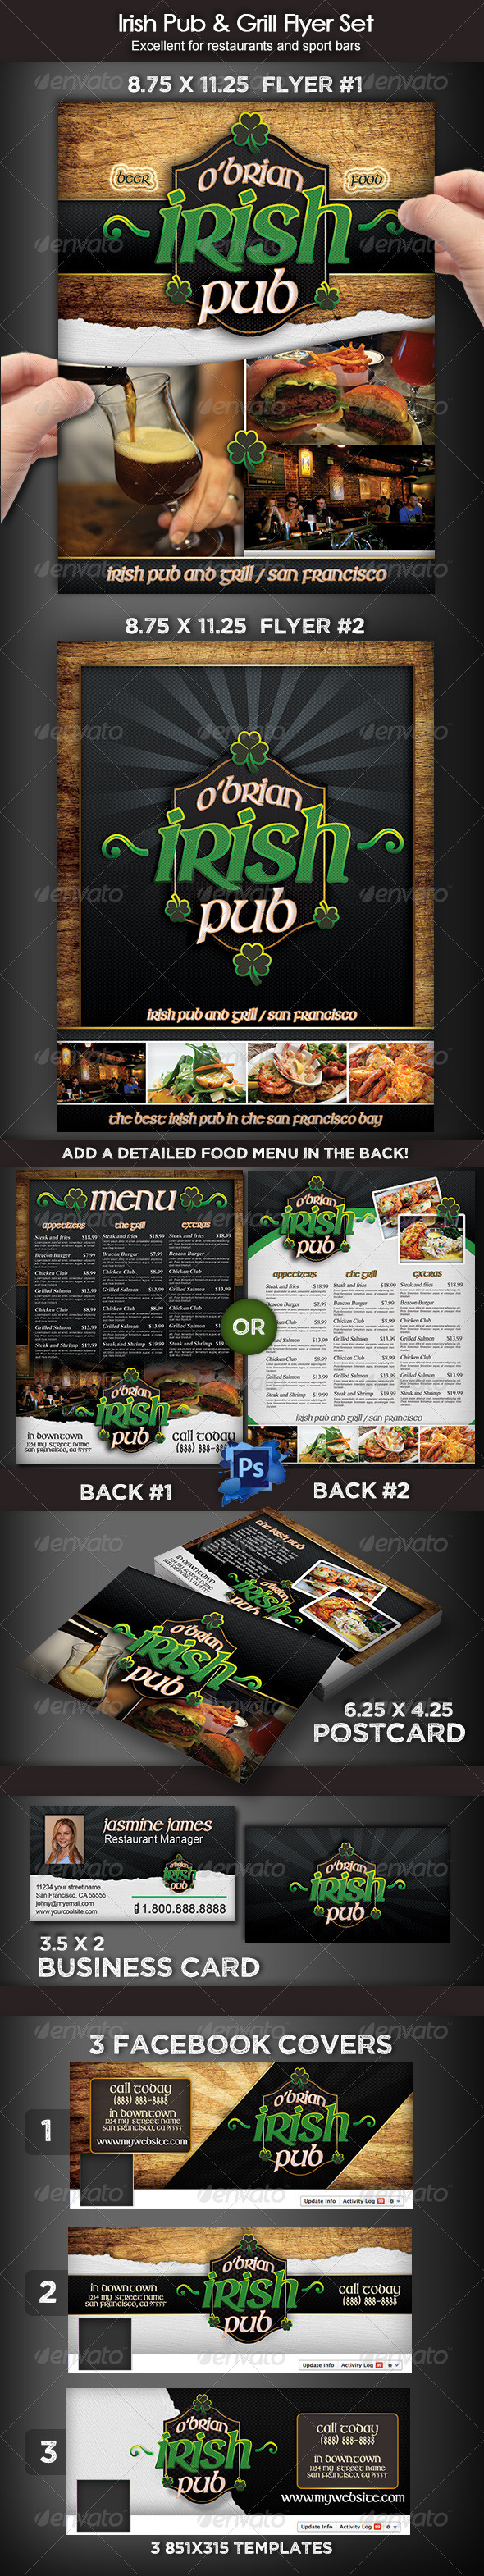 GraphicRiver Irish Pub & Grill Flyer Set 8191080